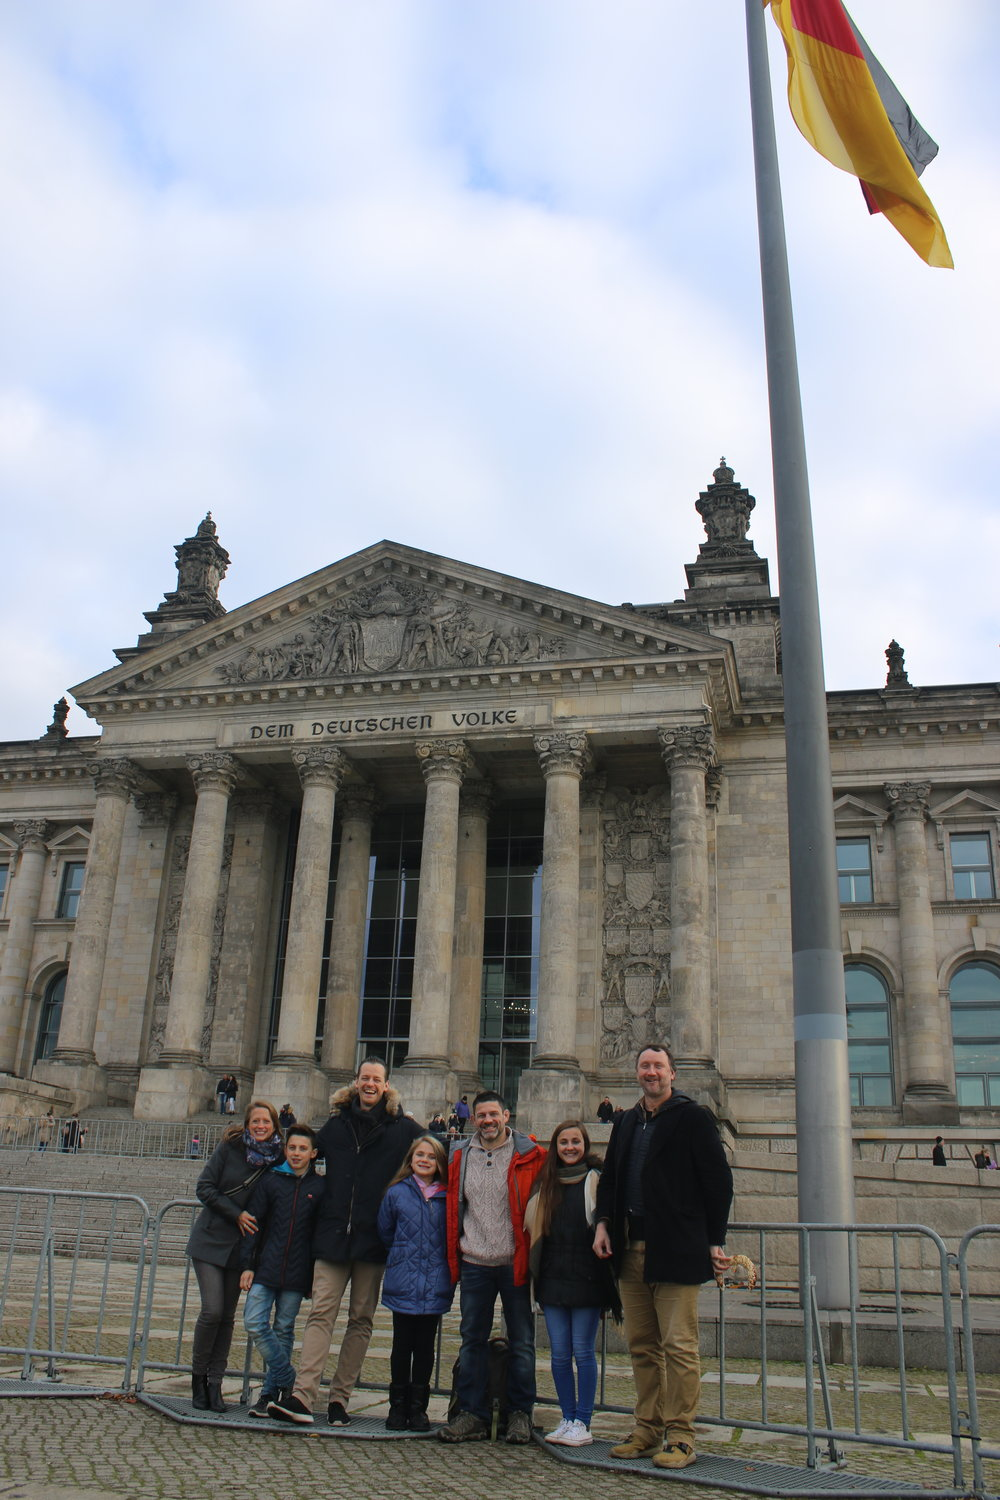 In front of the German Government building